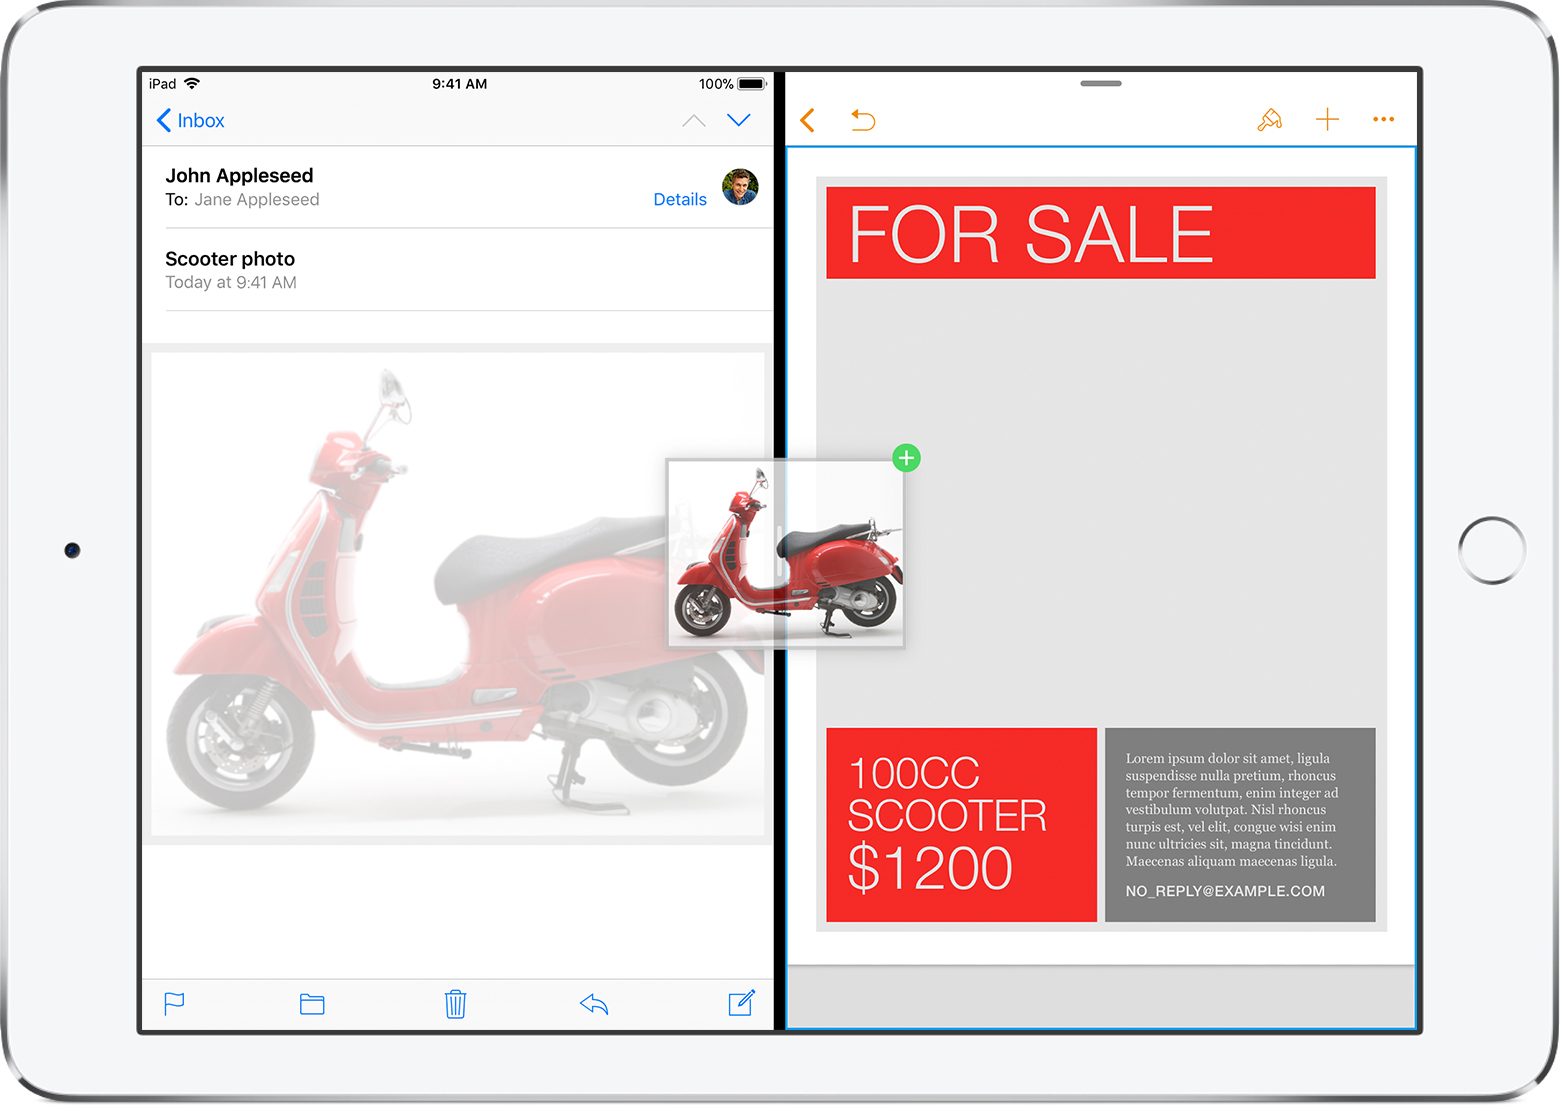 iPad with and email and Keynote open in Split View